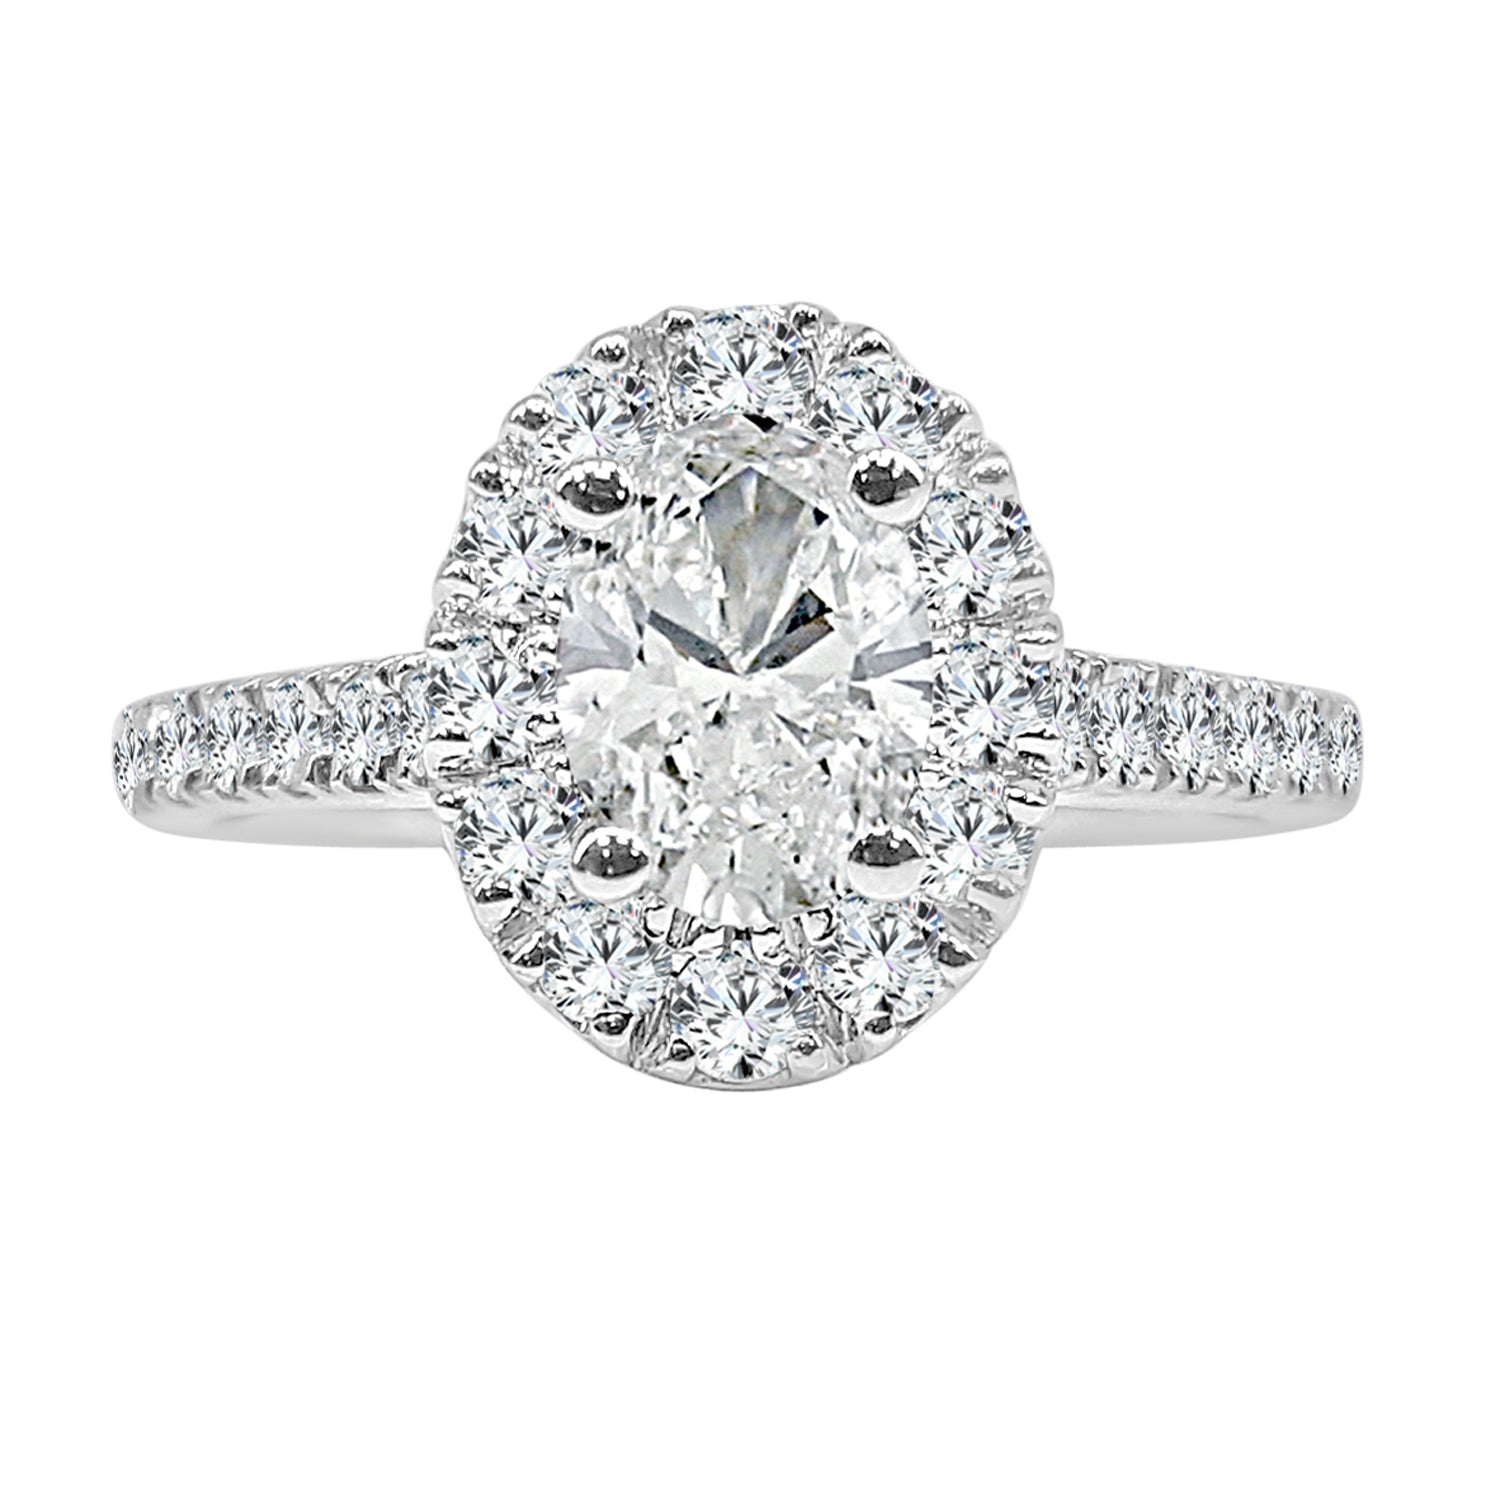 Oval Diamond Ring With Halo And Diamond Band